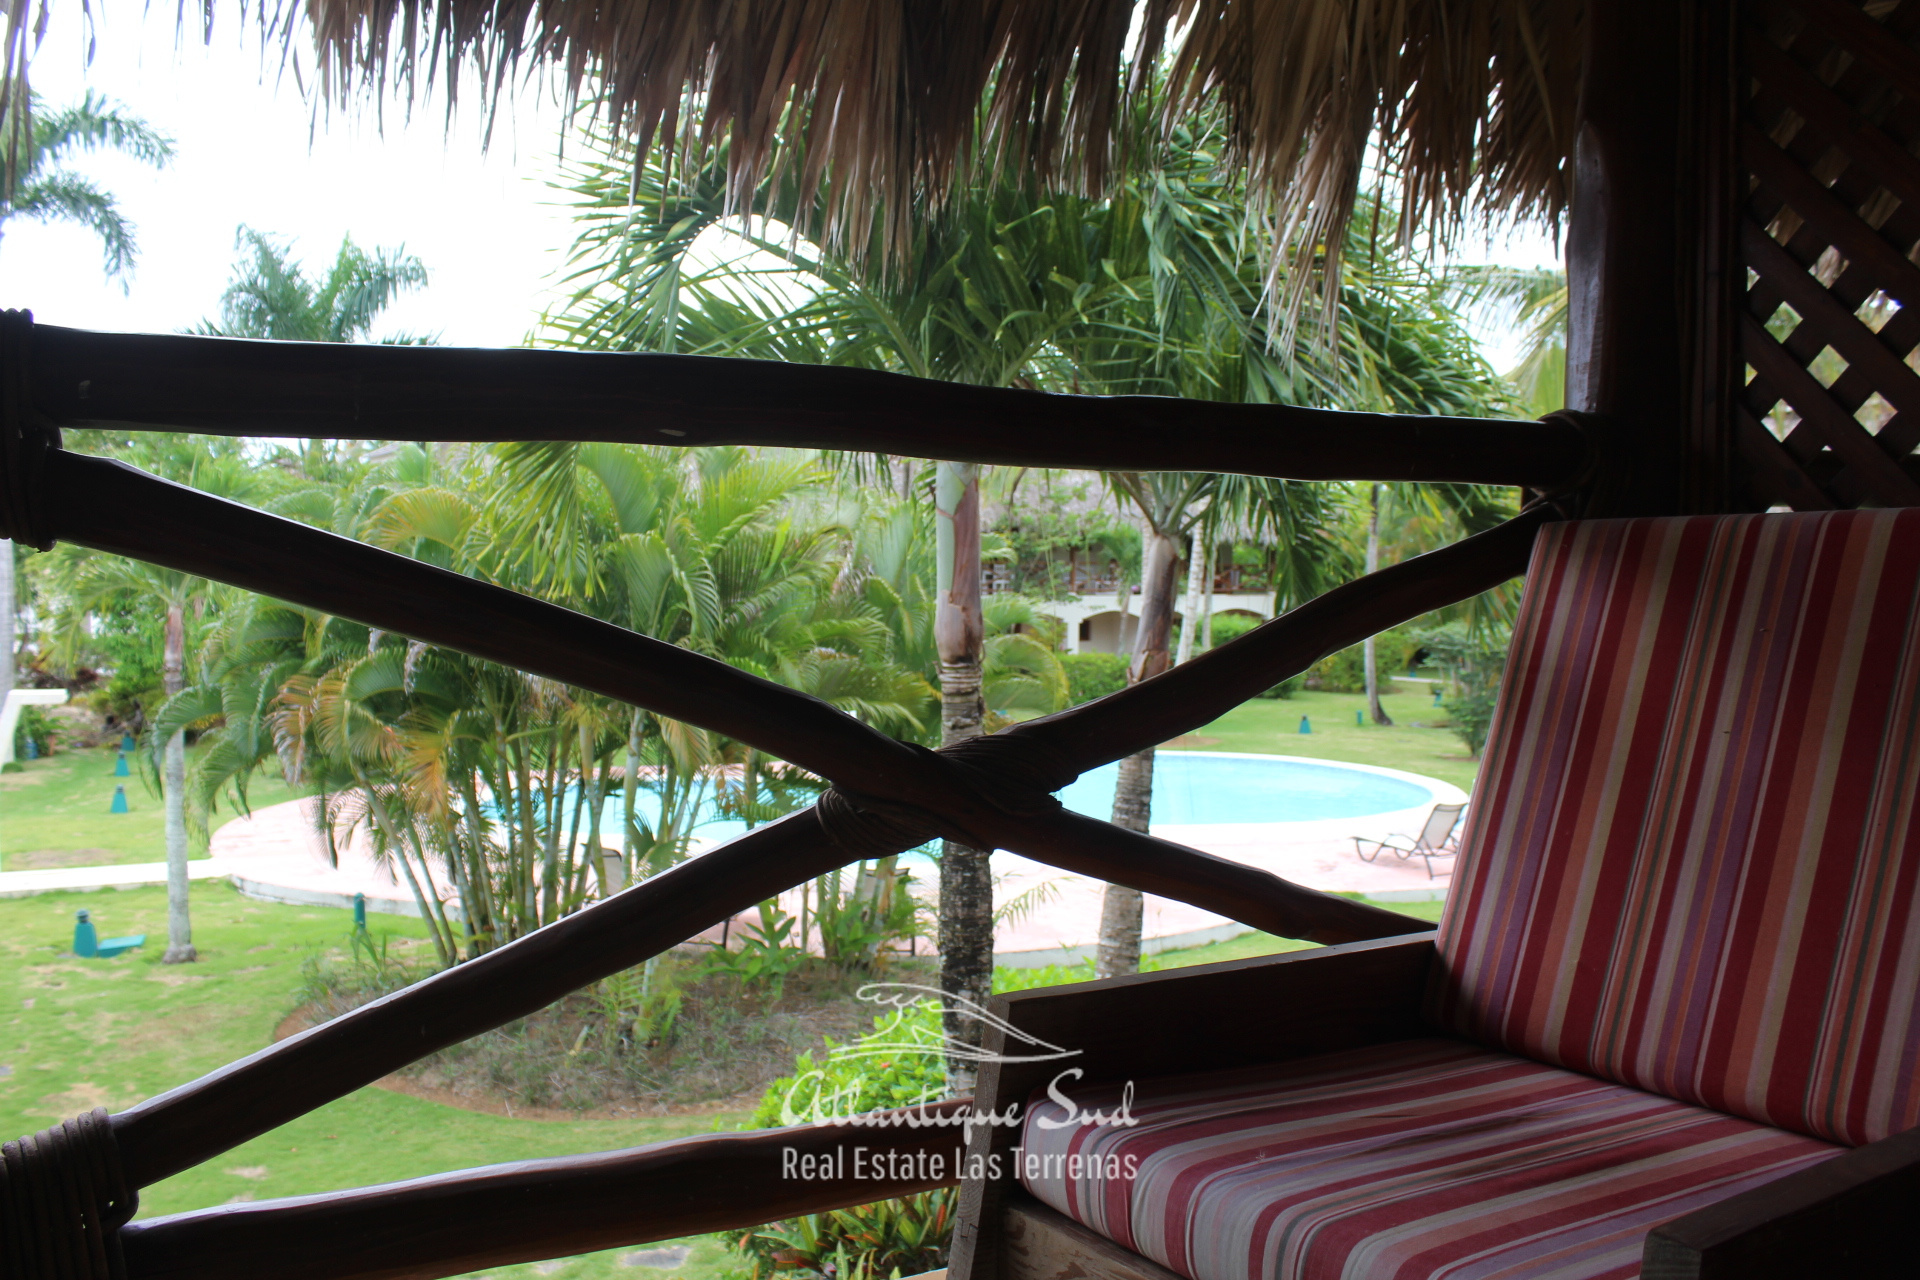 For-sale-Apartment-in-beachfront-community-with-mezzanine-Las-Terrenas_4810 (1).JPG